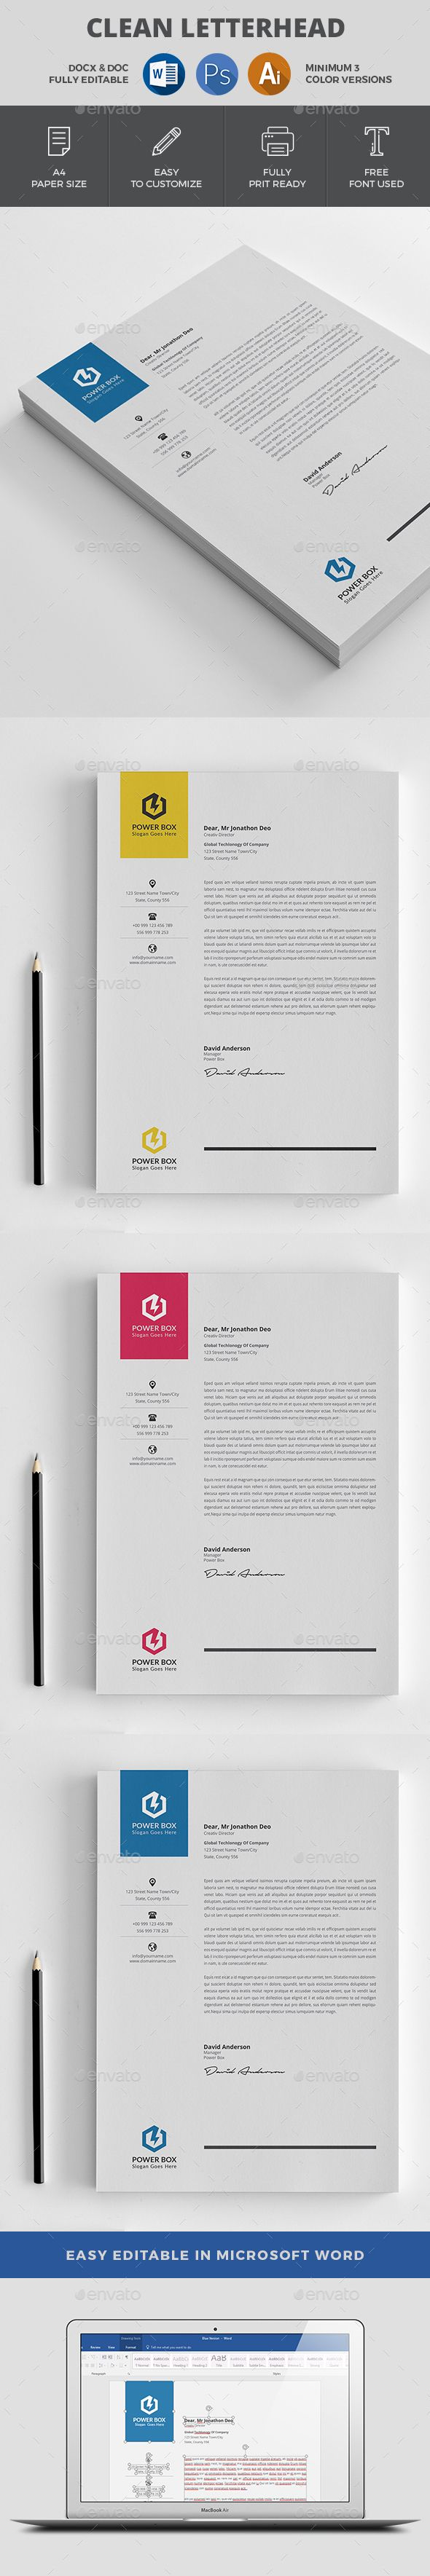 Letterhead Design Ideas browse letterhead design templates moo united states Letterhead Stationery Print Templates Download Here Httpsgraphicriver